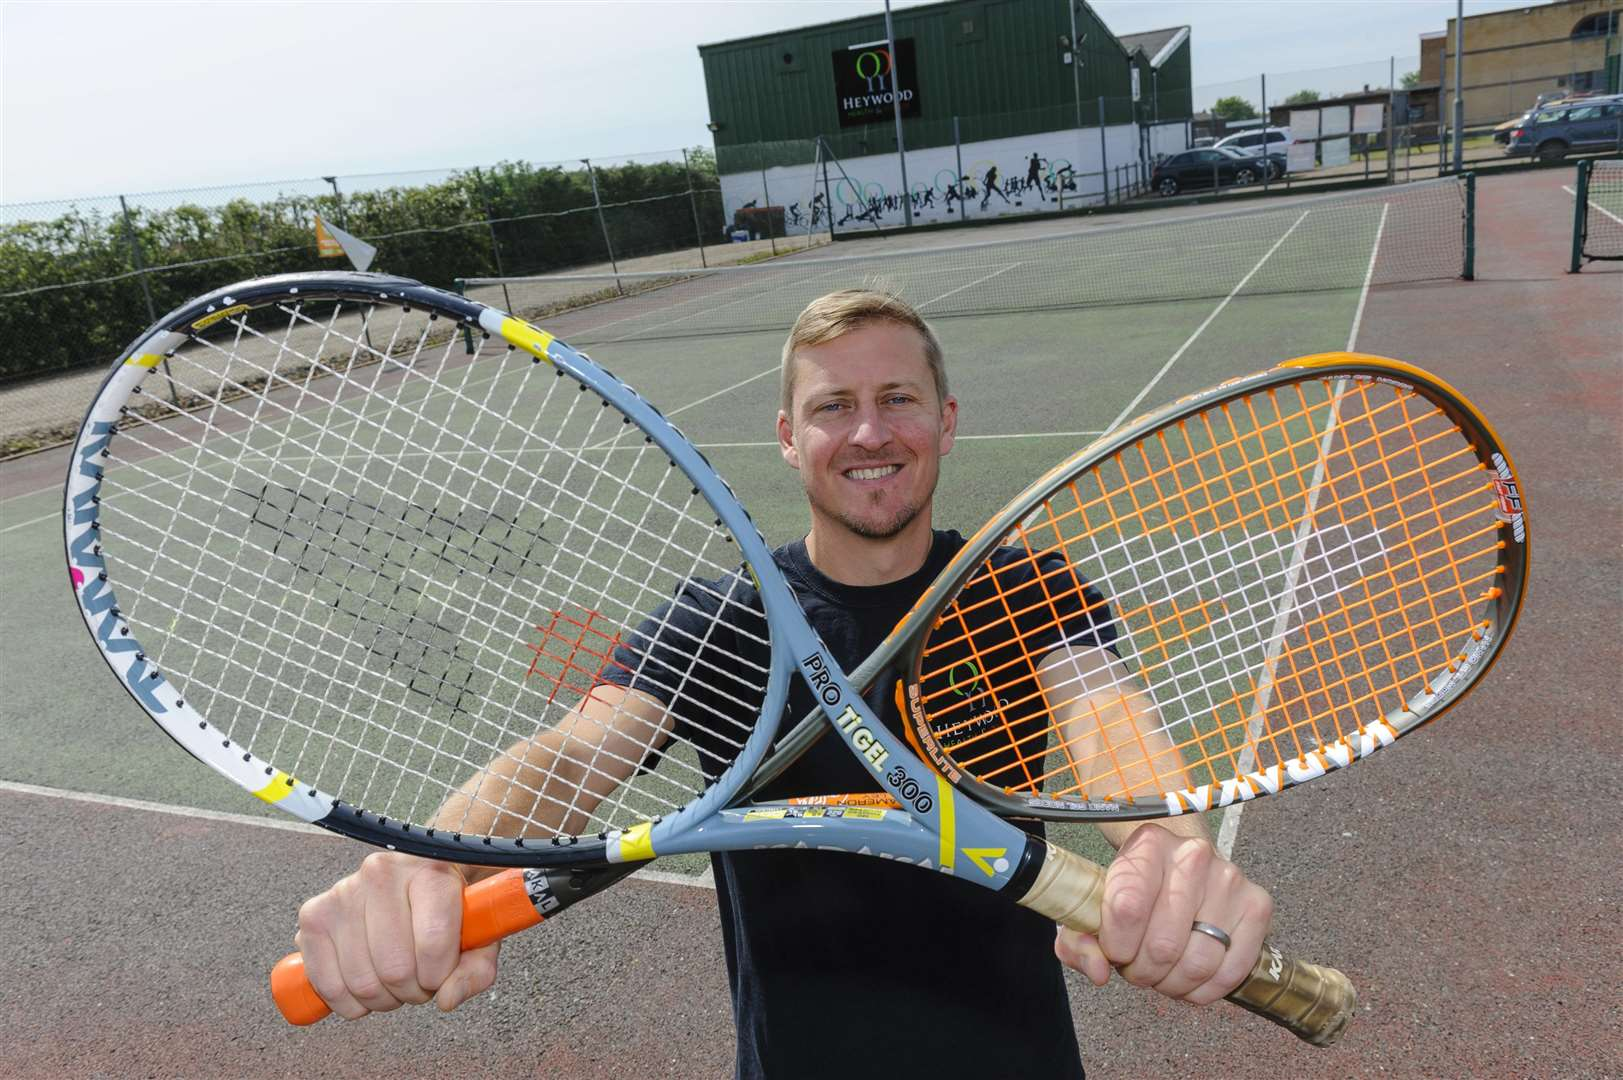 Tom Bobbins, of the Heywood Health and Fitness who's hoping to bring padel tennis to the region. Picture by Mark Bullimore.